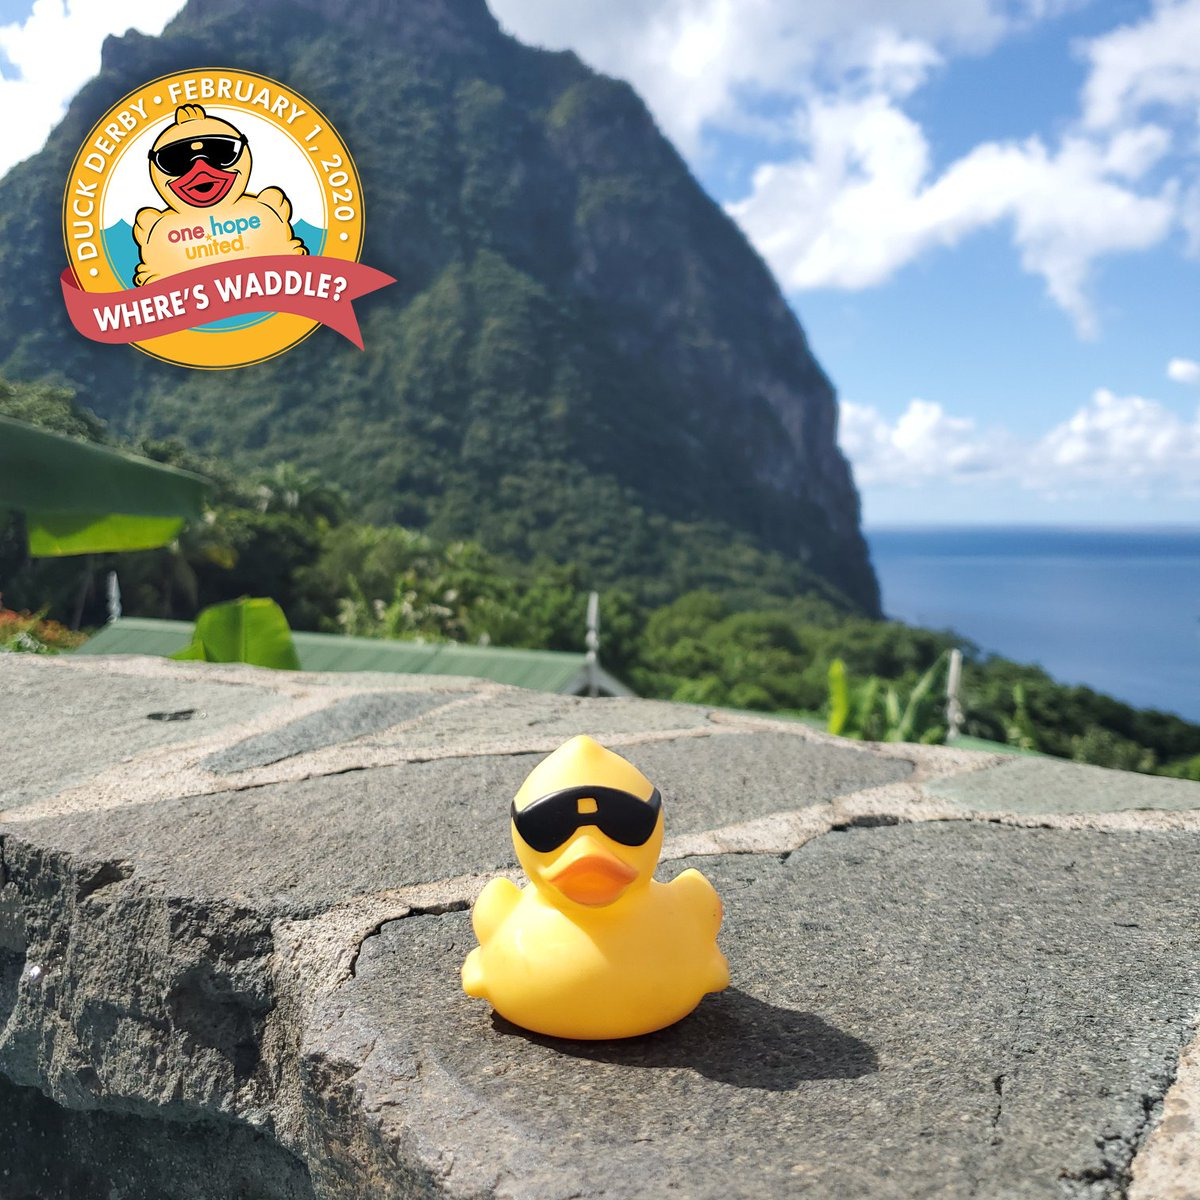 test Twitter Media - Before their big race on February 1st, our #OHUDuckDerby ducks are relaxing in St. Lucia 🌴  Adopt a duck for $5 to enter the race and help raise money for One Hope United and @Osceolaschools.  Learn more at https://t.co/Cd2TyVn5dQ  #AdoptADuck #WheresWaddle #FloridaNonProfit https://t.co/ywu7PvKsOa